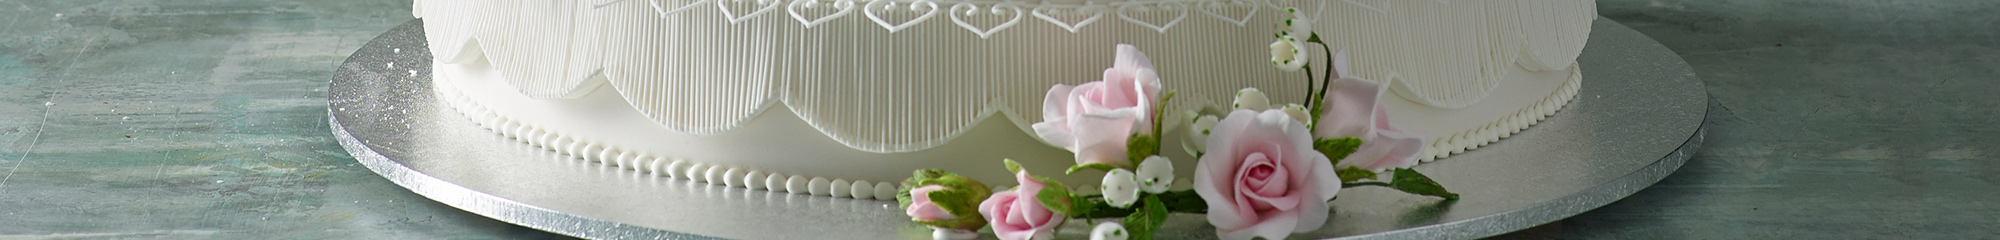 View cake design and decoration courses